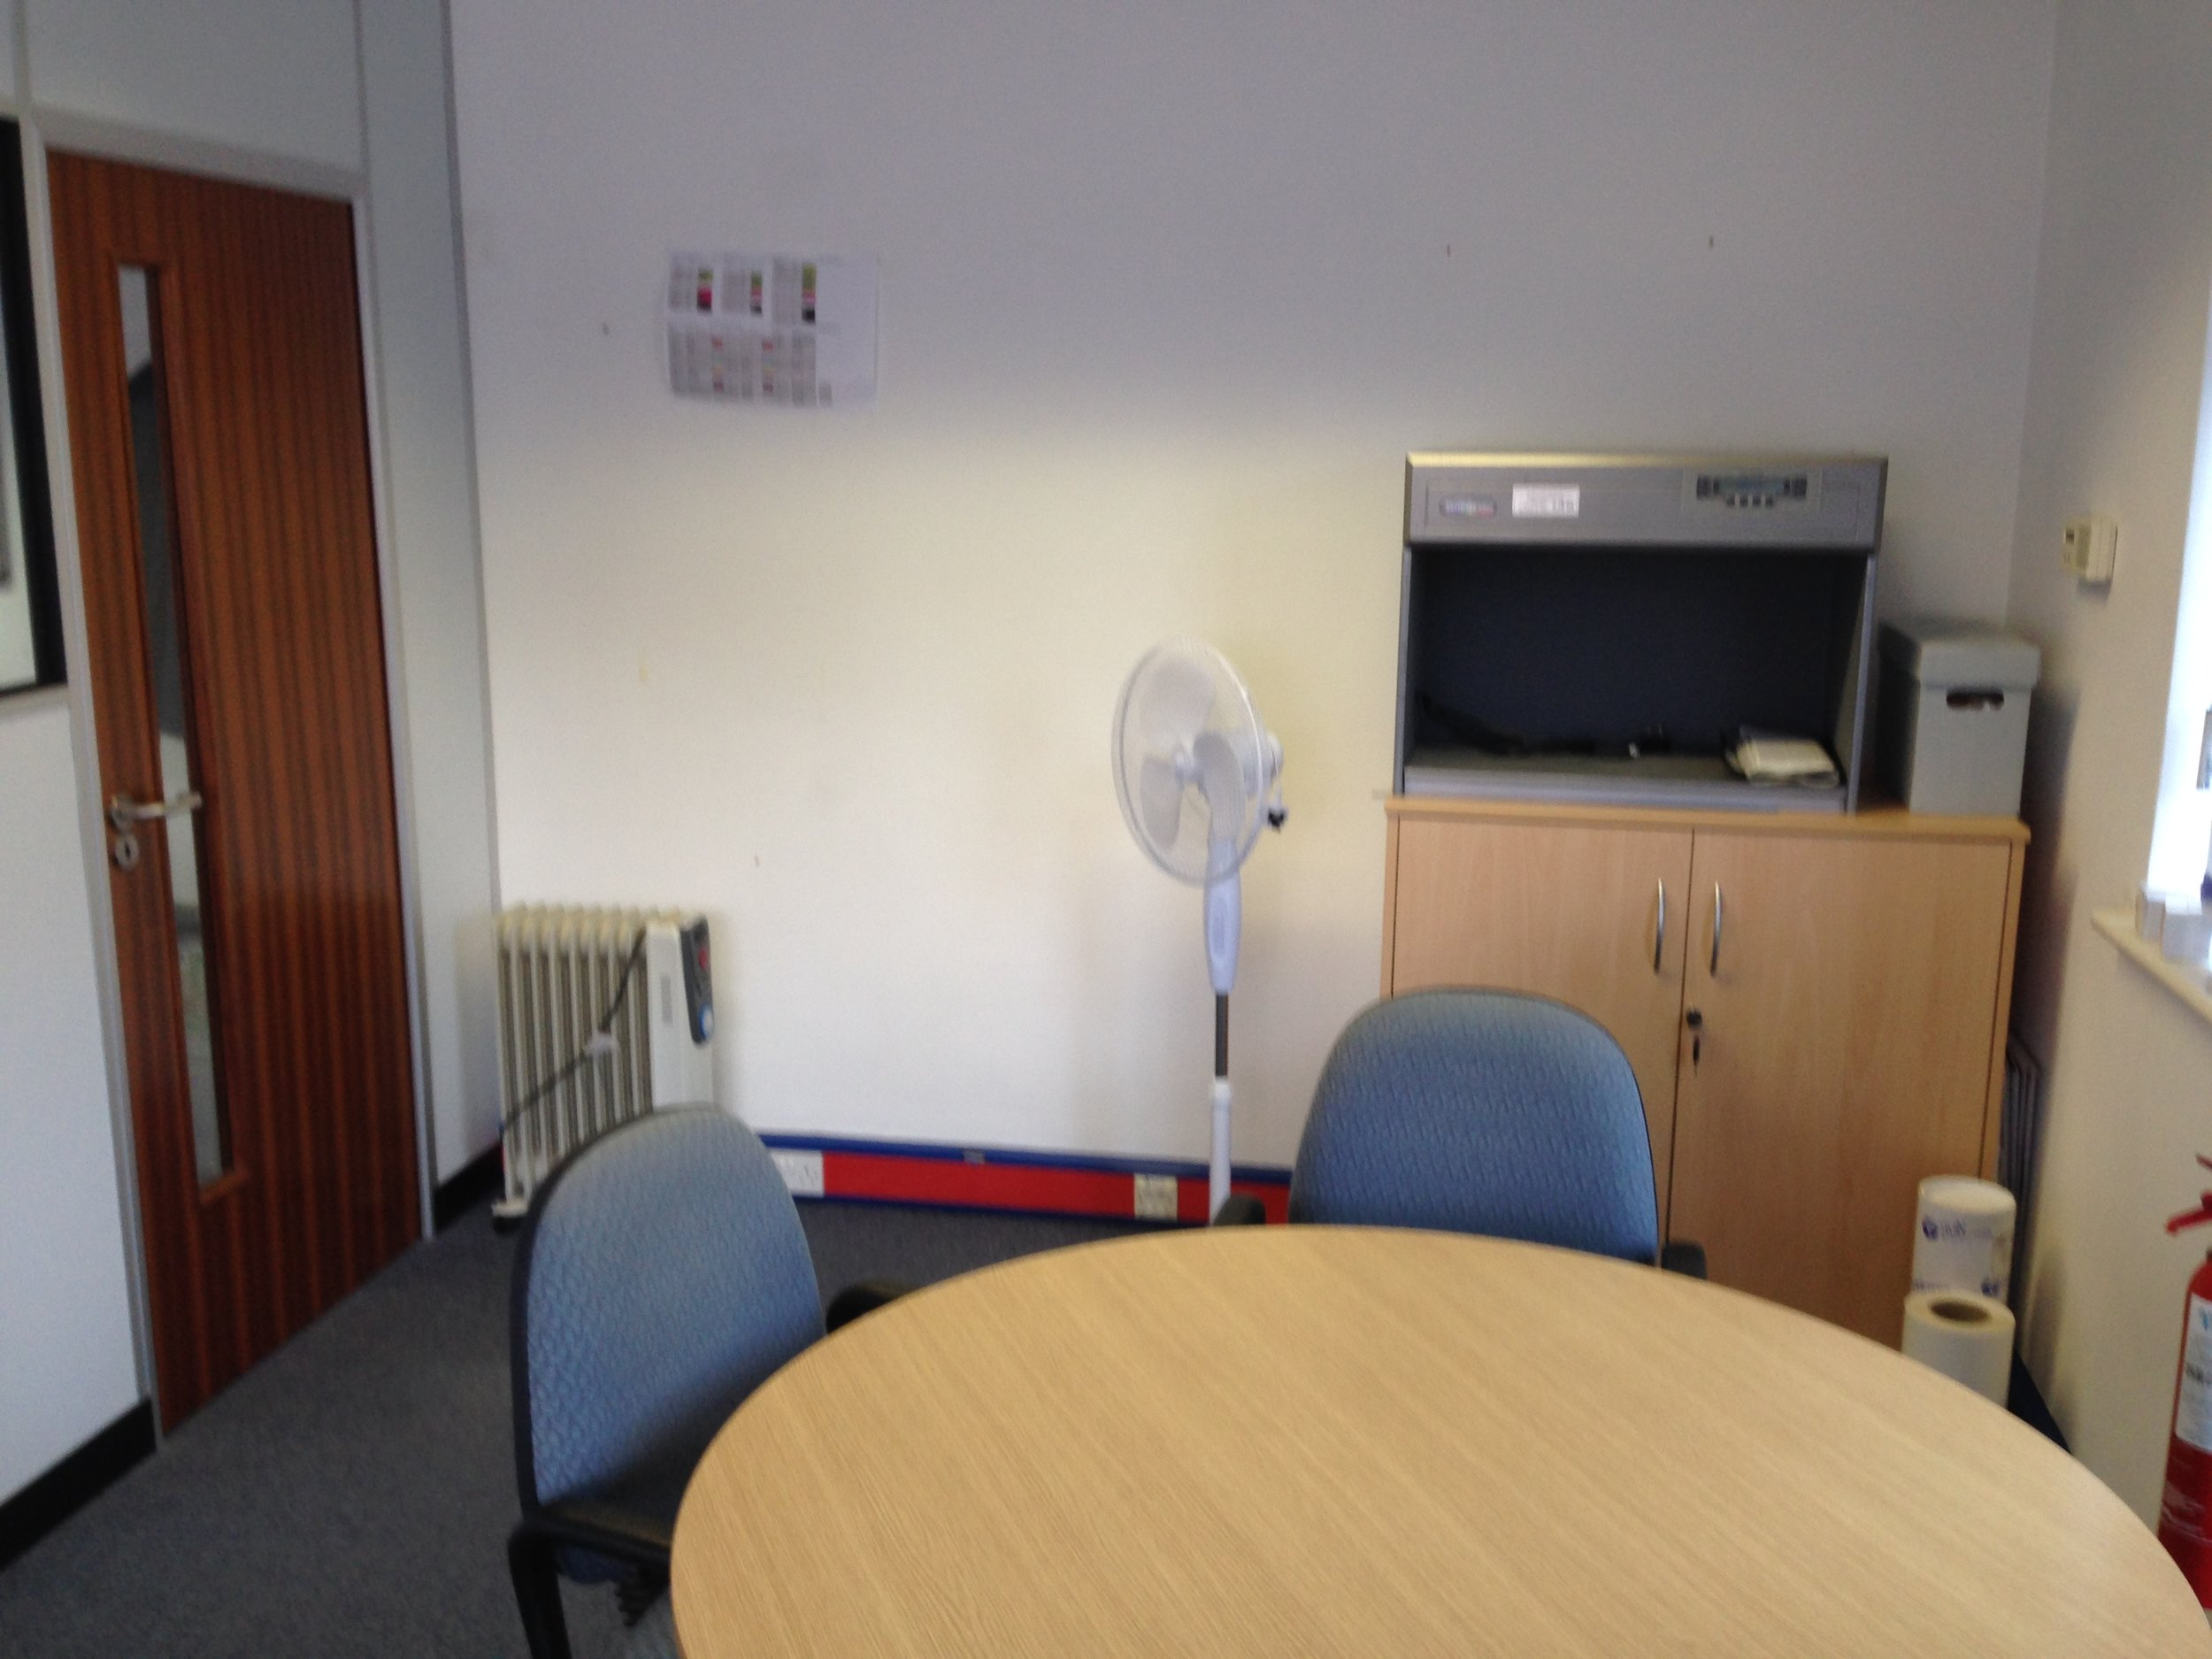 Office remodelling - design and refit - Littlehampton manufacturing sector-20